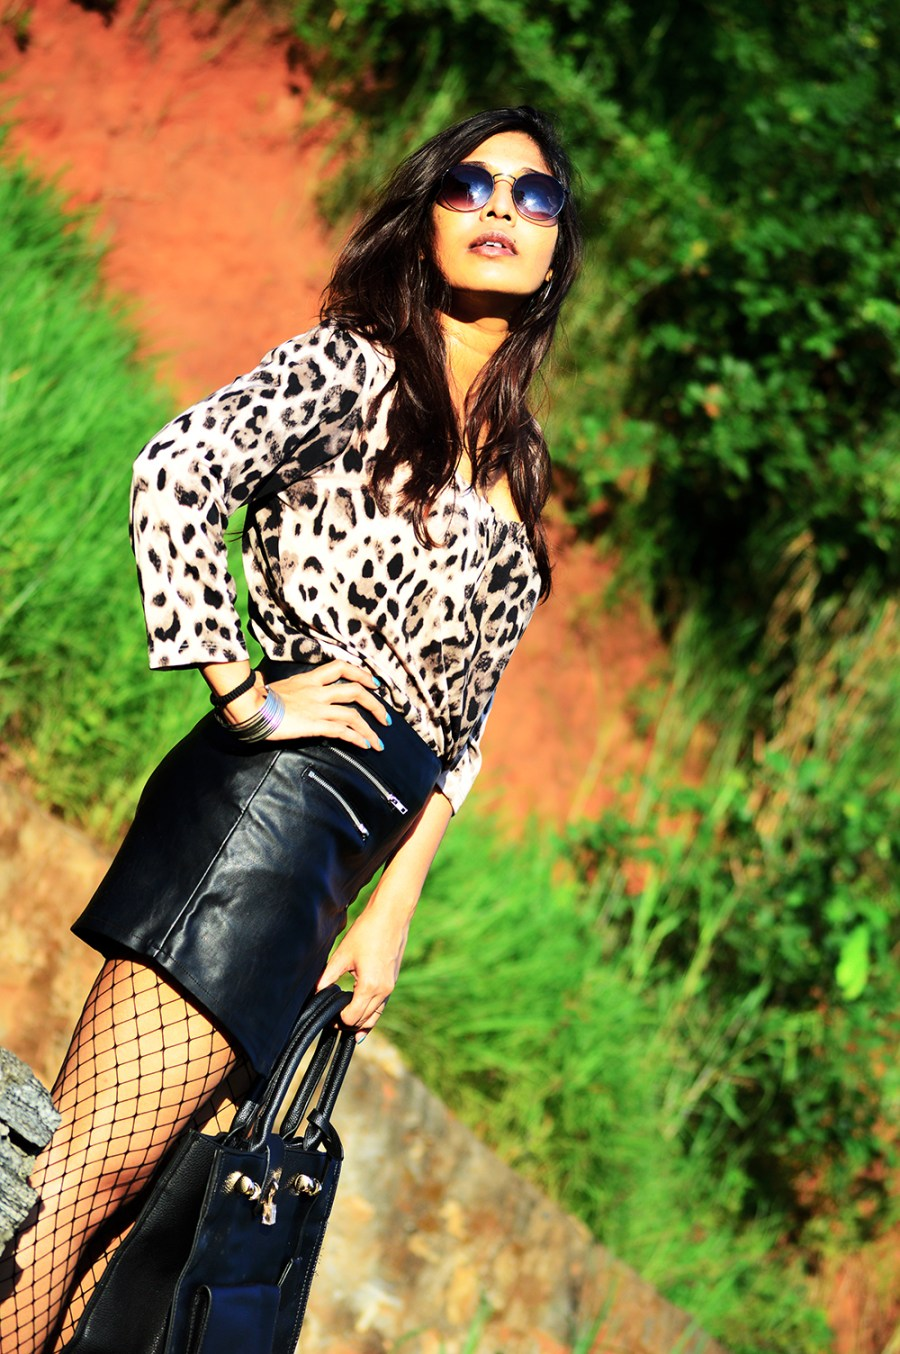 Leopard Top, Street Style, Indian Fashion Blogger, Fashion, Style, Fishnet Stockings, Faux Leather skirt, Photography-5